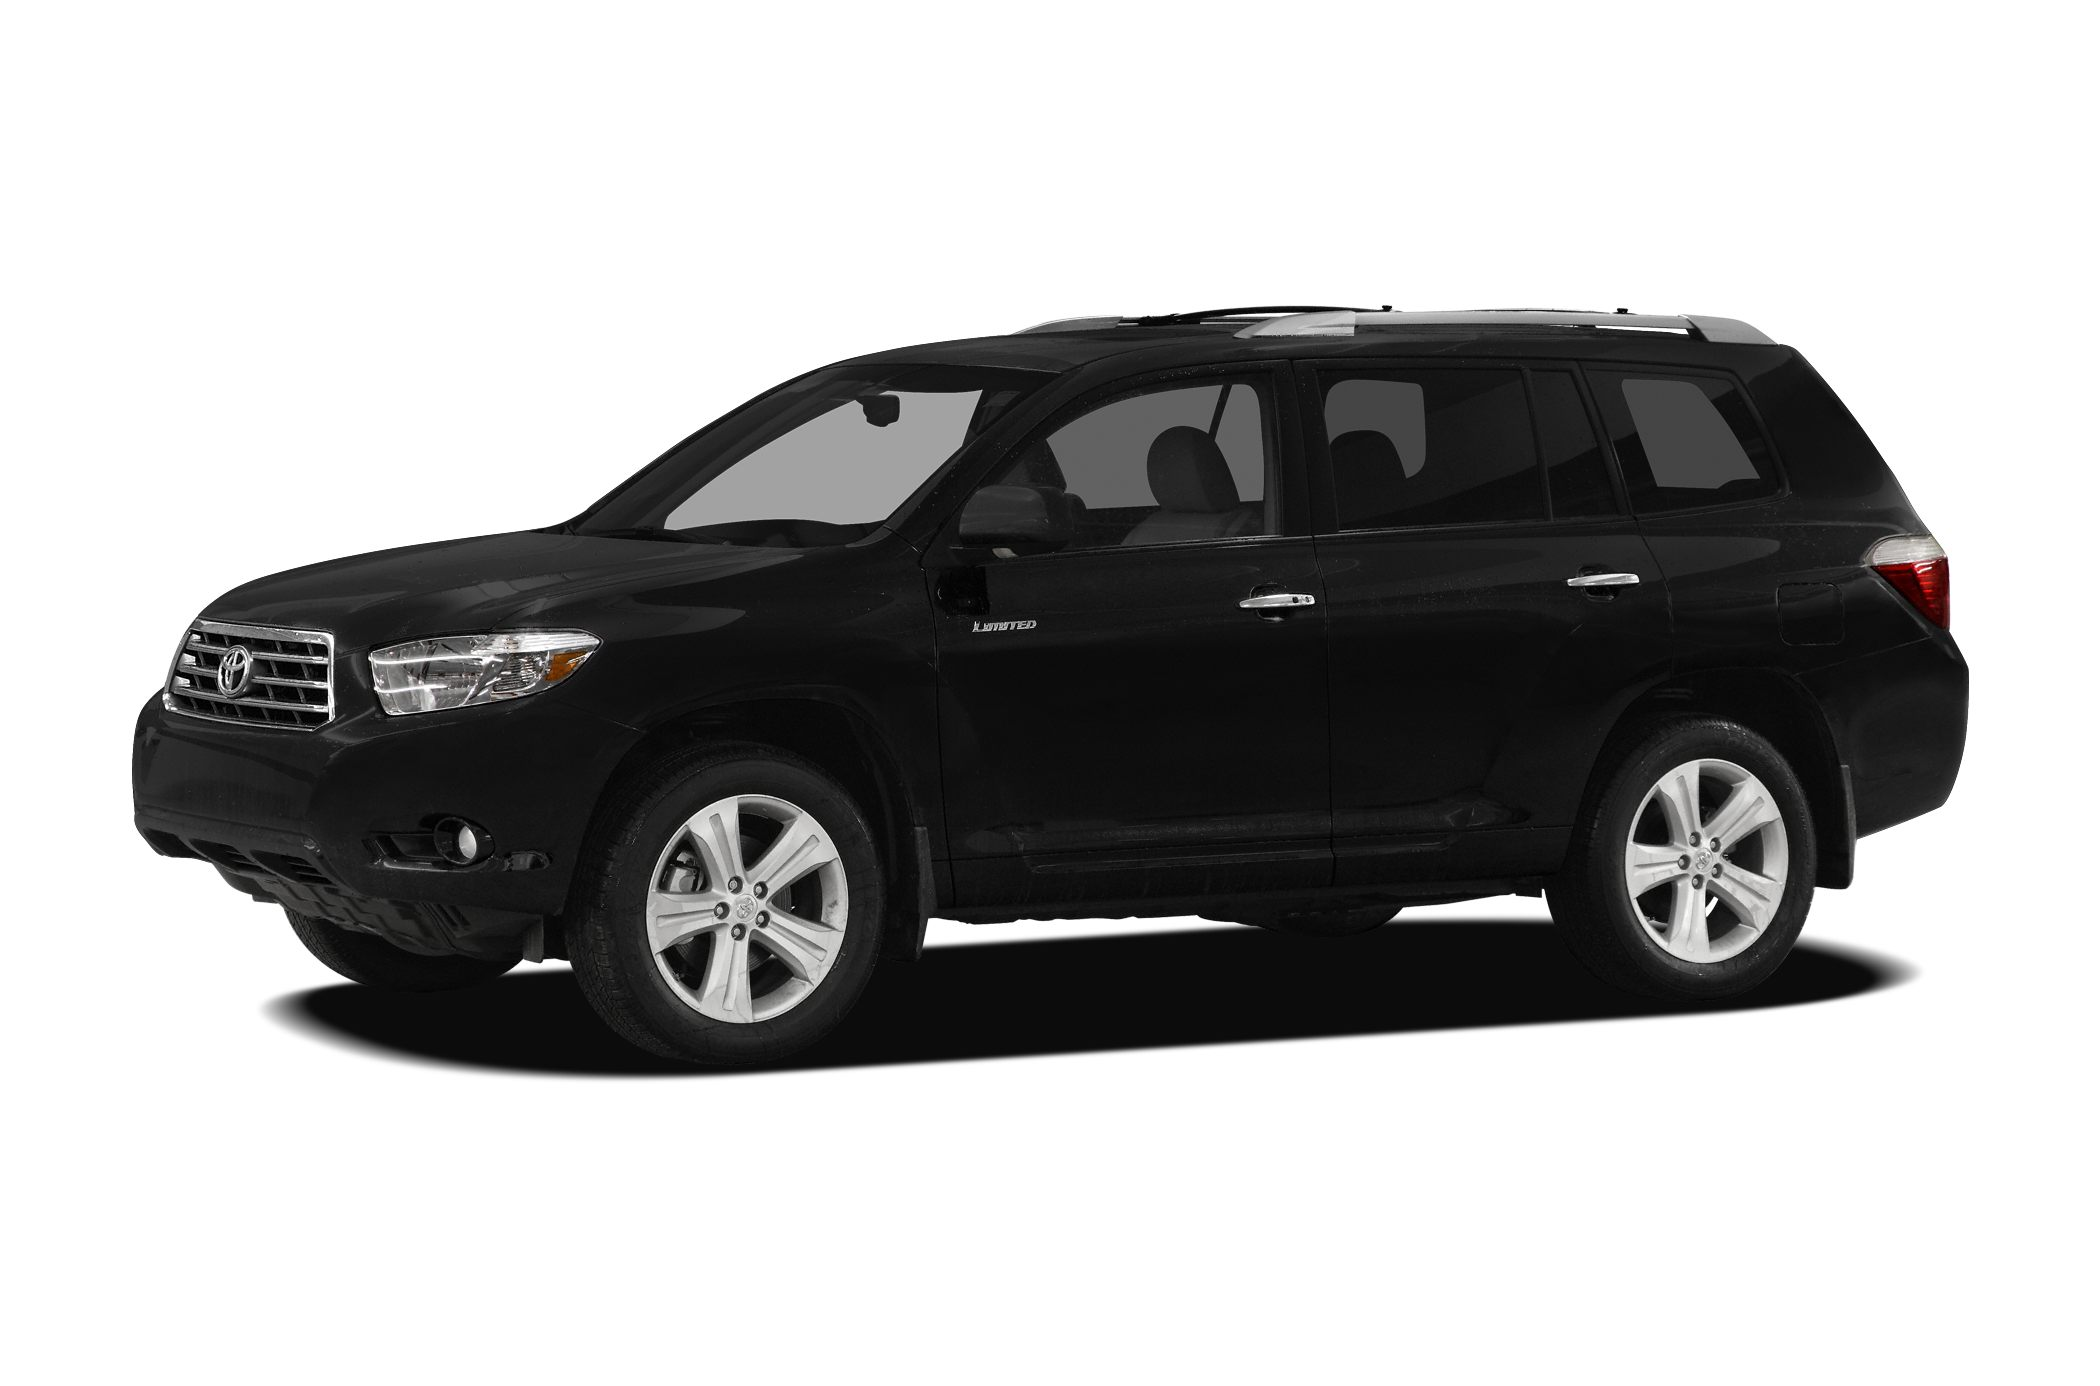 2008 Toyota Highlander Limited SUV for sale in Spartanburg for $22,495 with 59,965 miles.